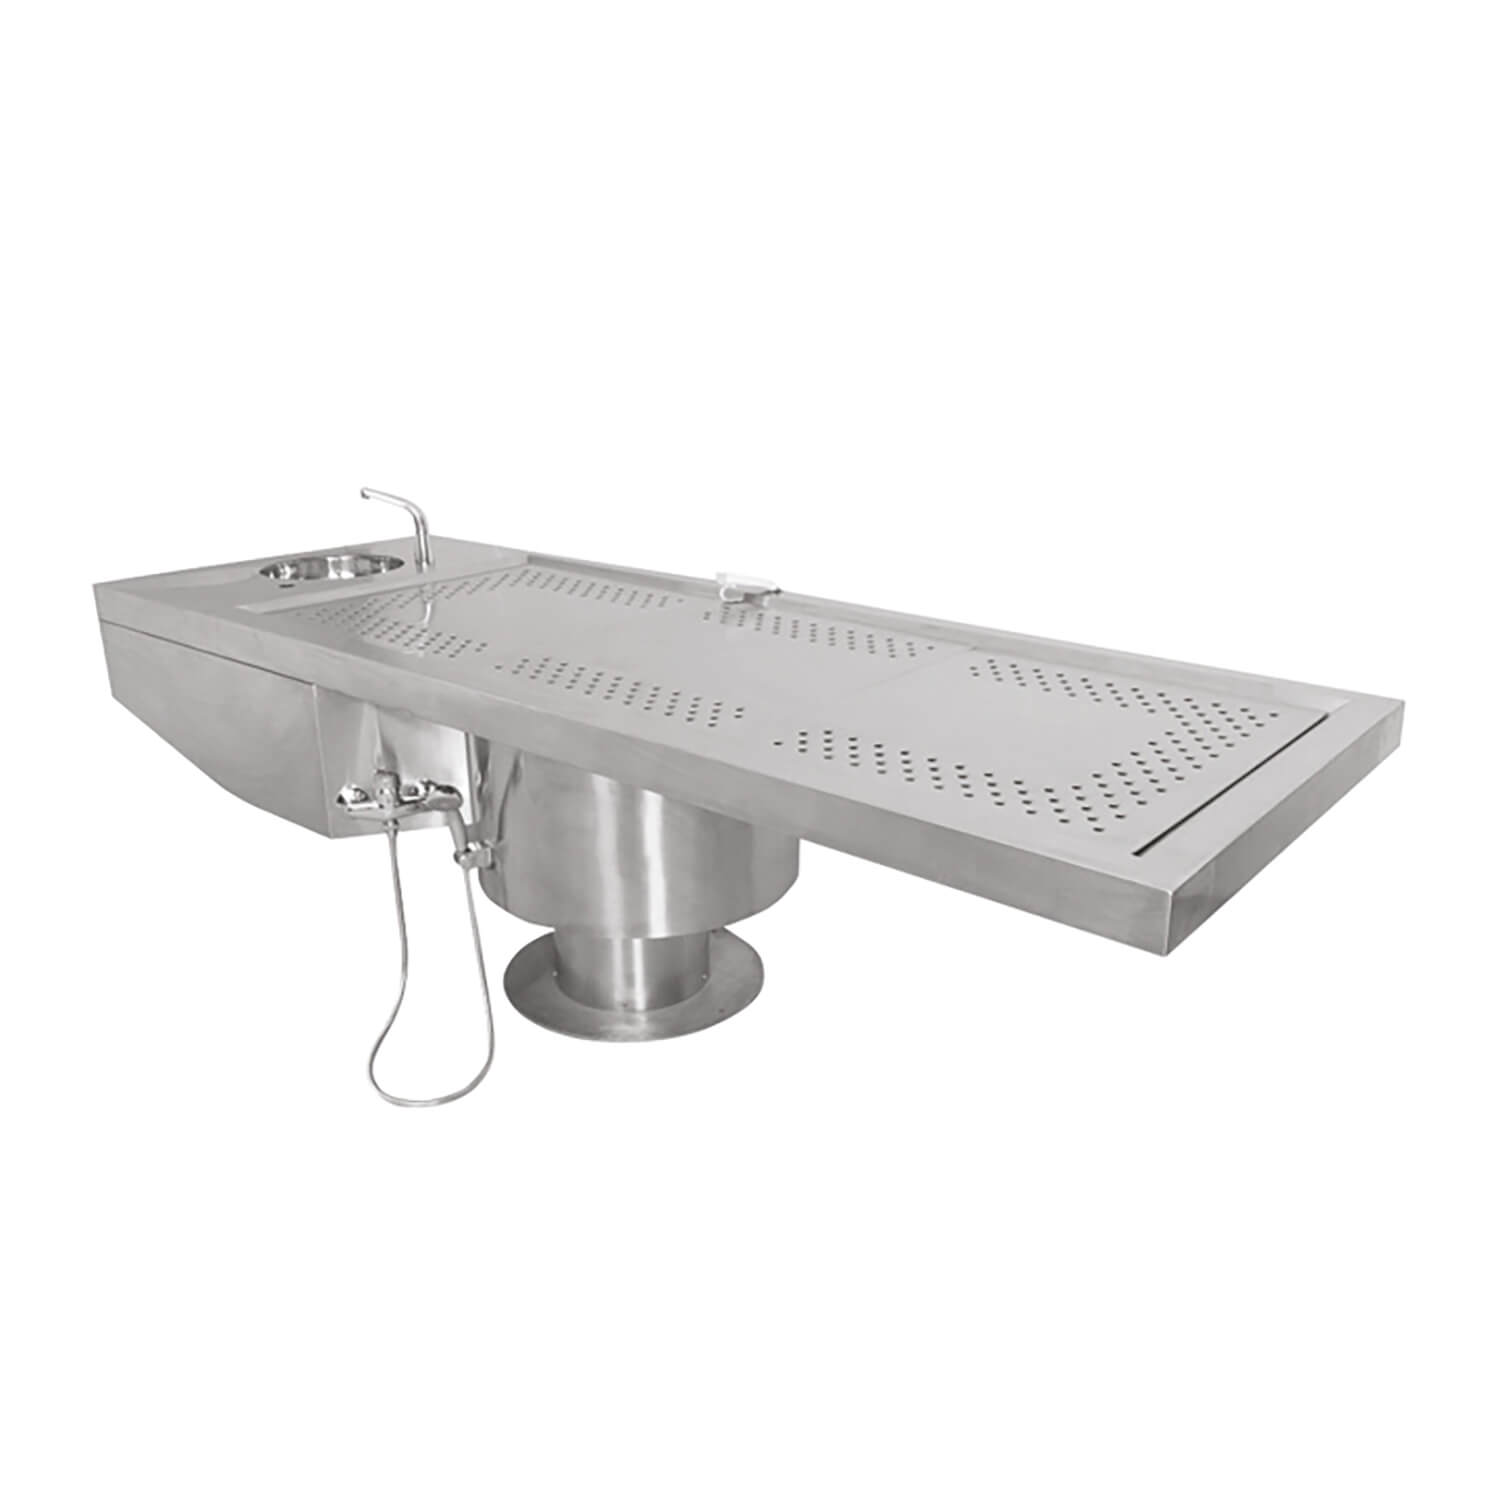 Autospy Table, Height Adjustable